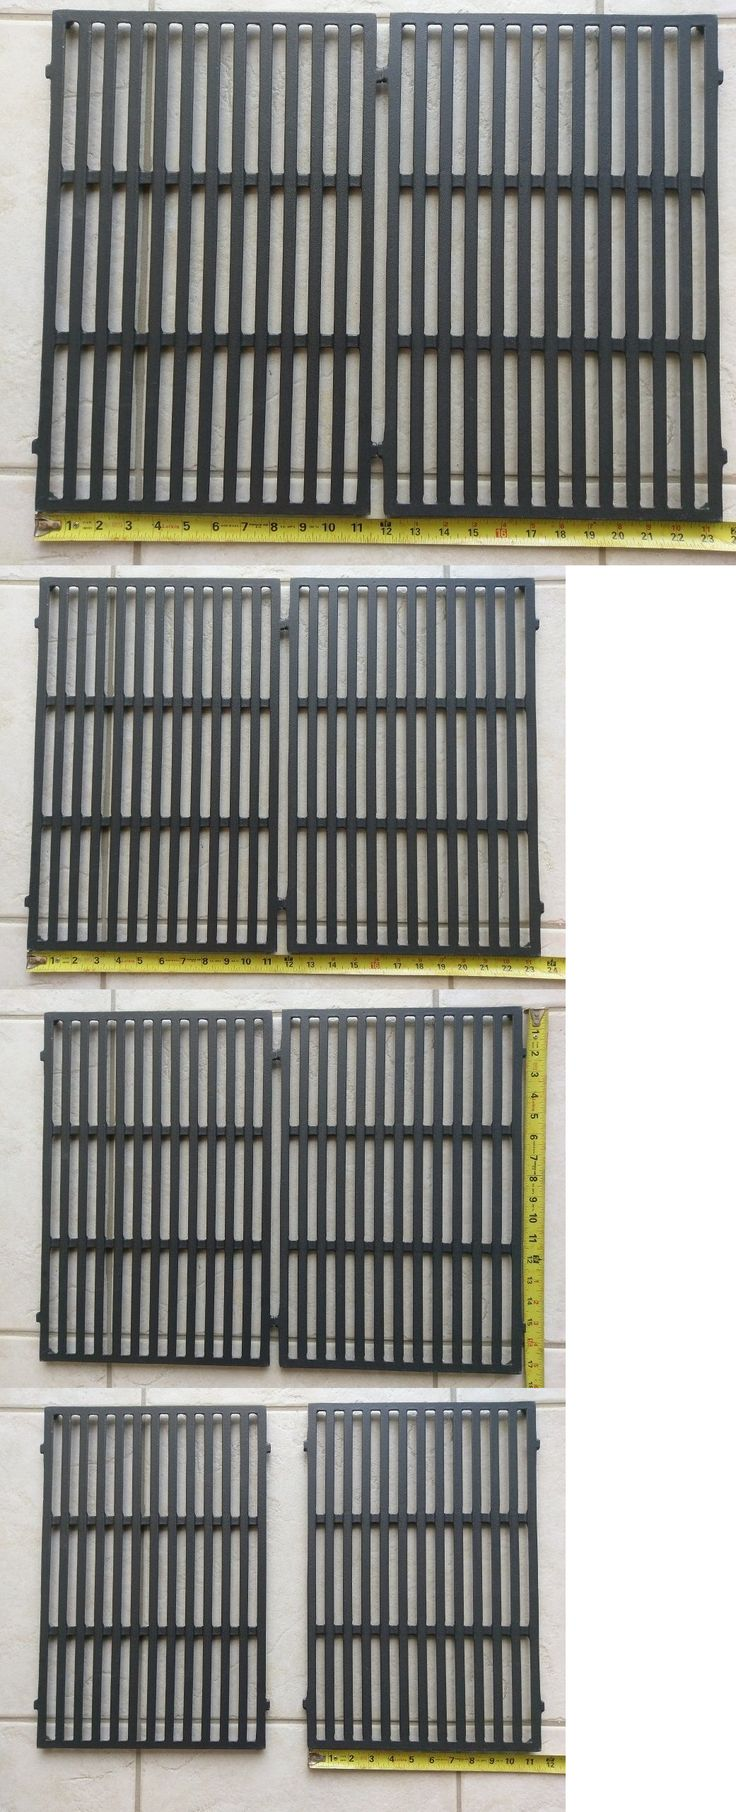 BBQ and Grill Replacement Parts 177018: Weber 7638 Porcelain Enamel Cast Iron Grill Grates For Spirit 300 Series -> BUY IT NOW ONLY: $98.83 on eBay!